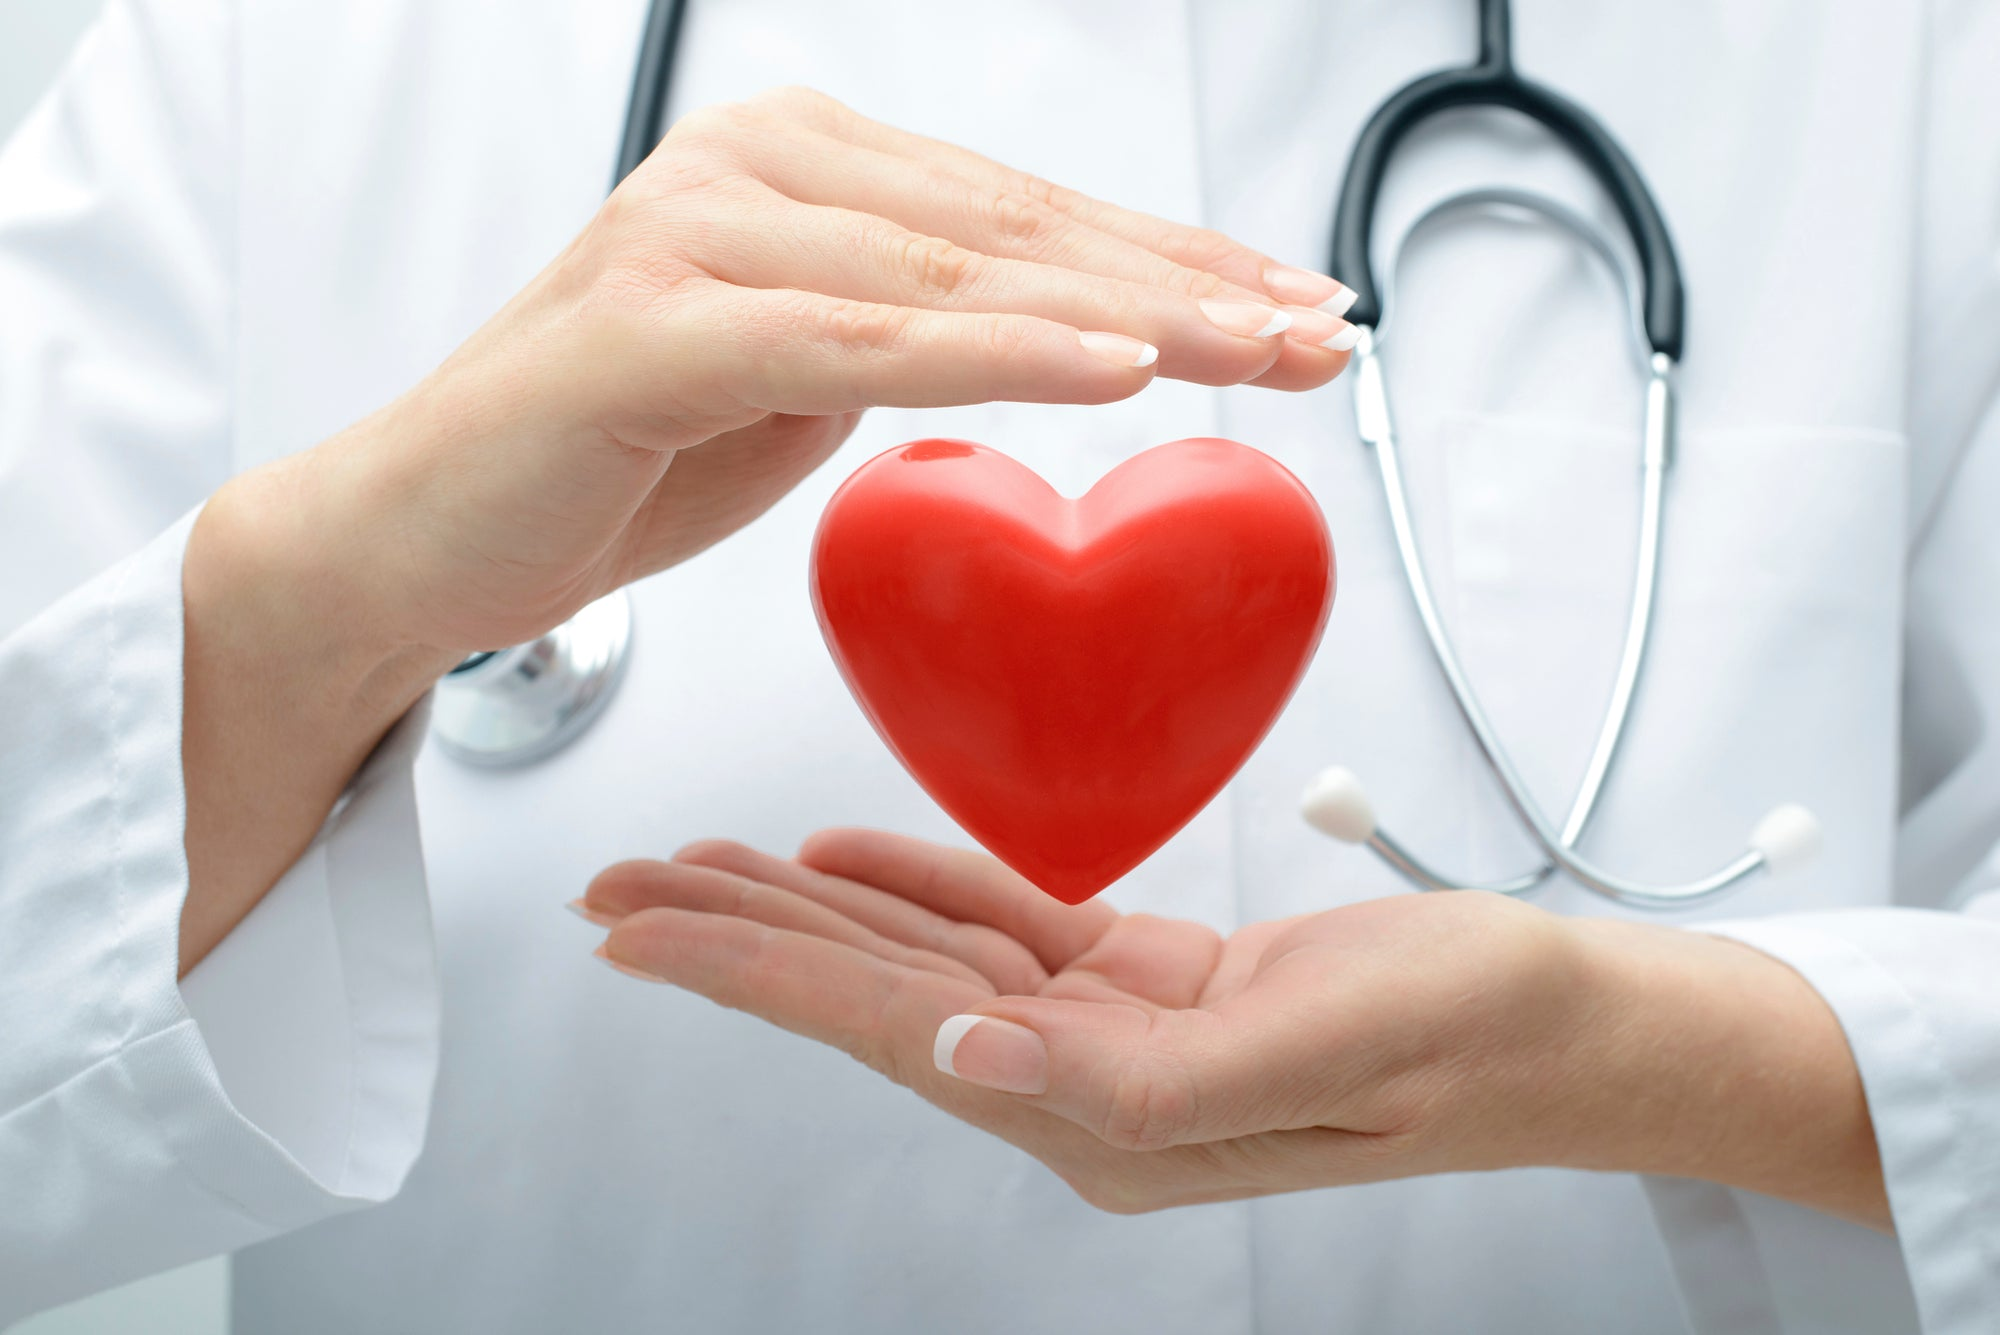 8 steps to prevent heart disease